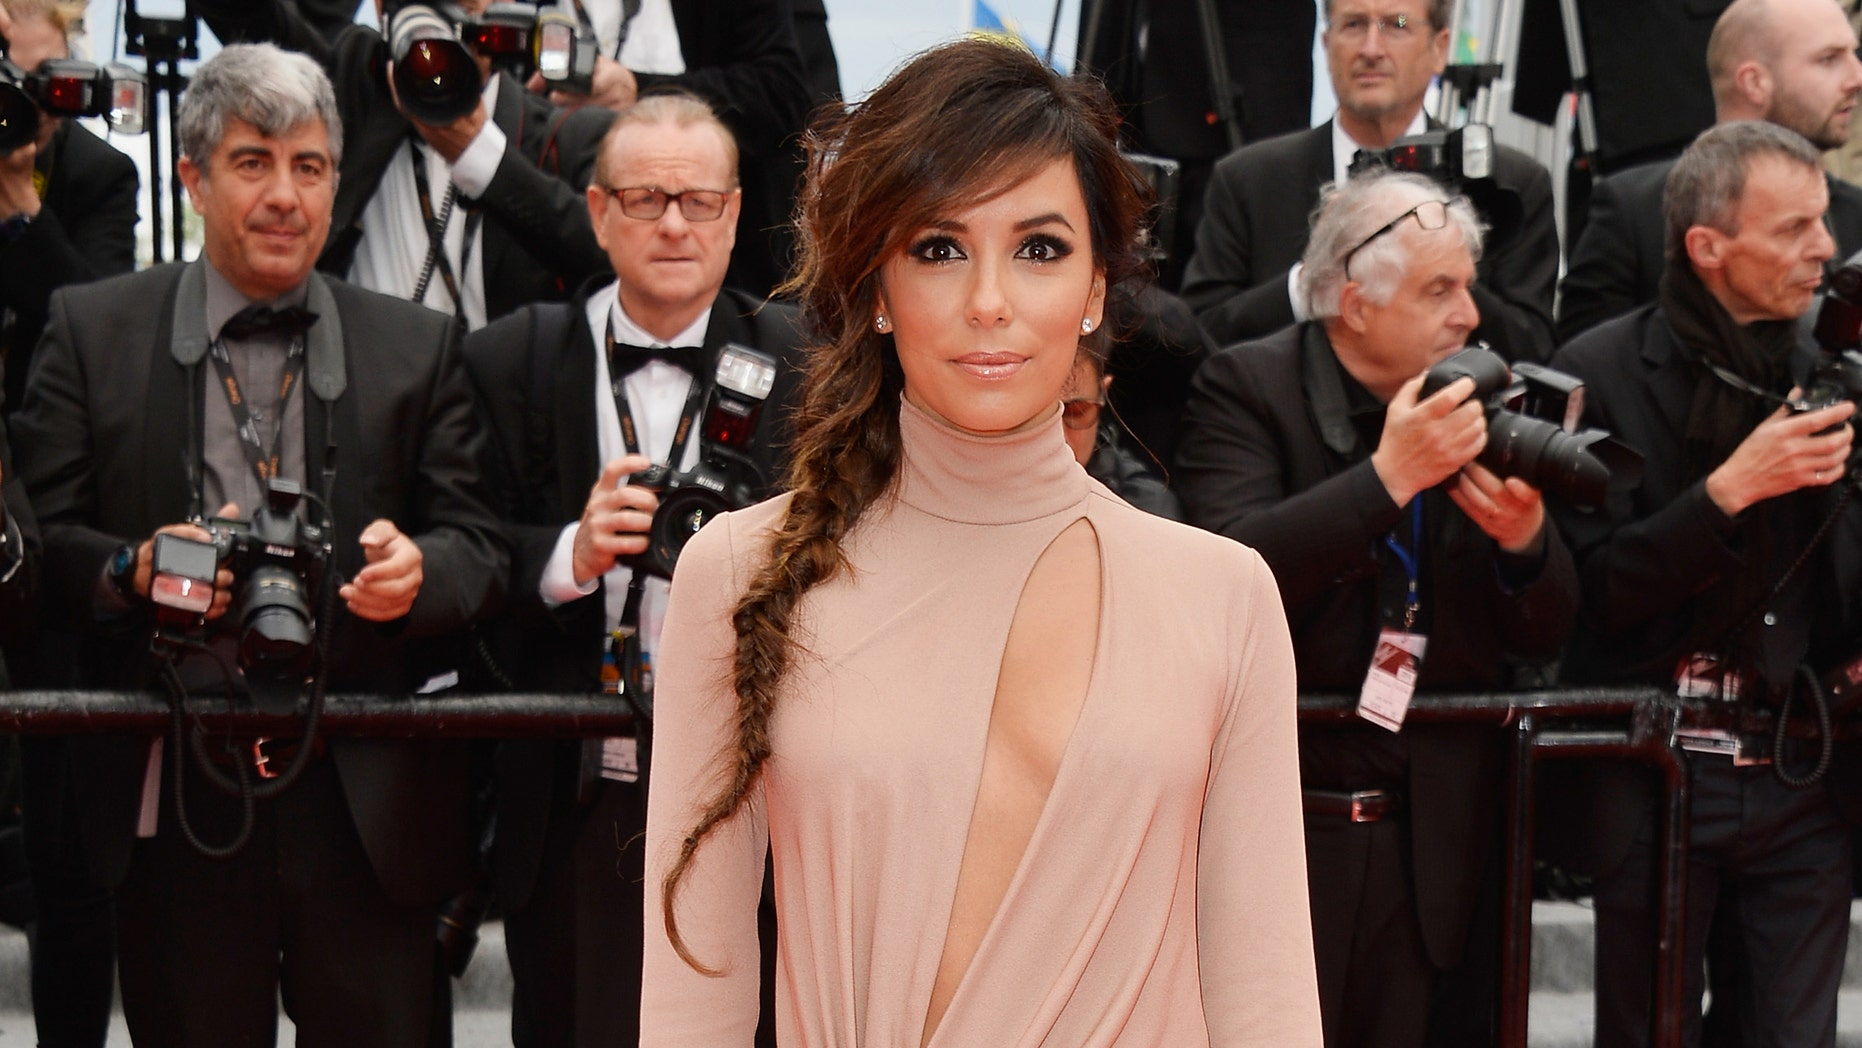 """CANNES, FRANCE - MAY 19:  Eva Longoria attends the """"Foxcatcher"""" premiere during the 67th Annual Cannes Film Festival on May 19, 2014 in Cannes, France.  (Photo by Pascal Le Segretain/Getty Images)"""